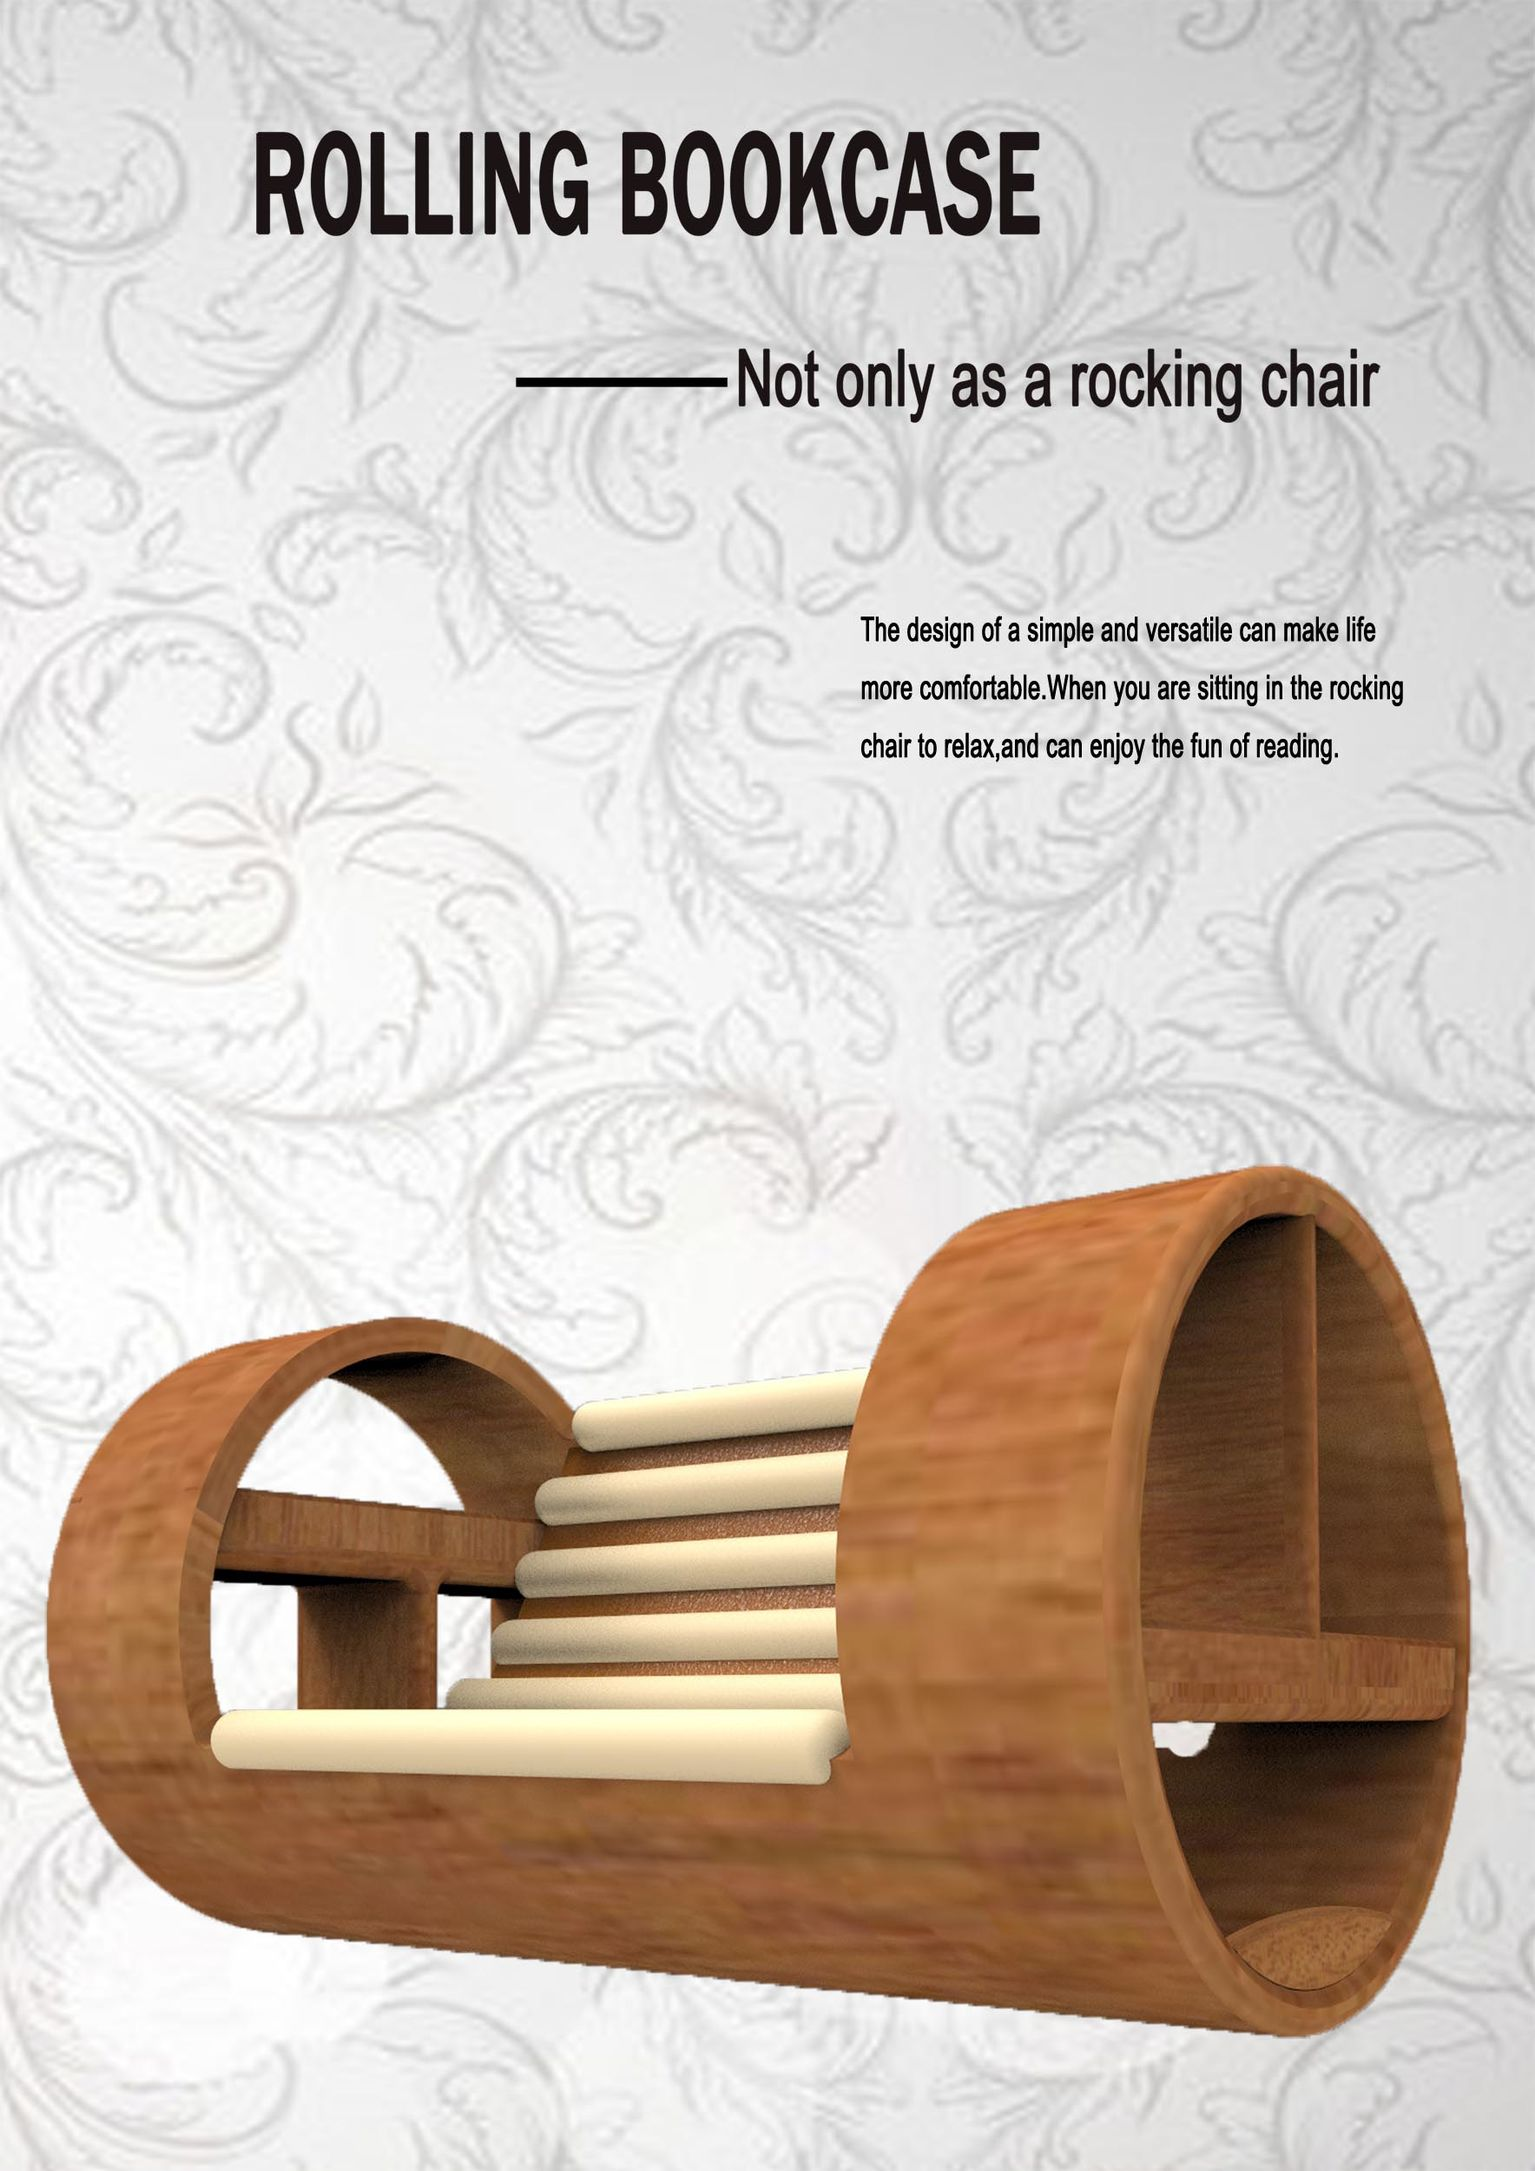 Tremendous Rolling Bookcase If World Design Guide Evergreenethics Interior Chair Design Evergreenethicsorg